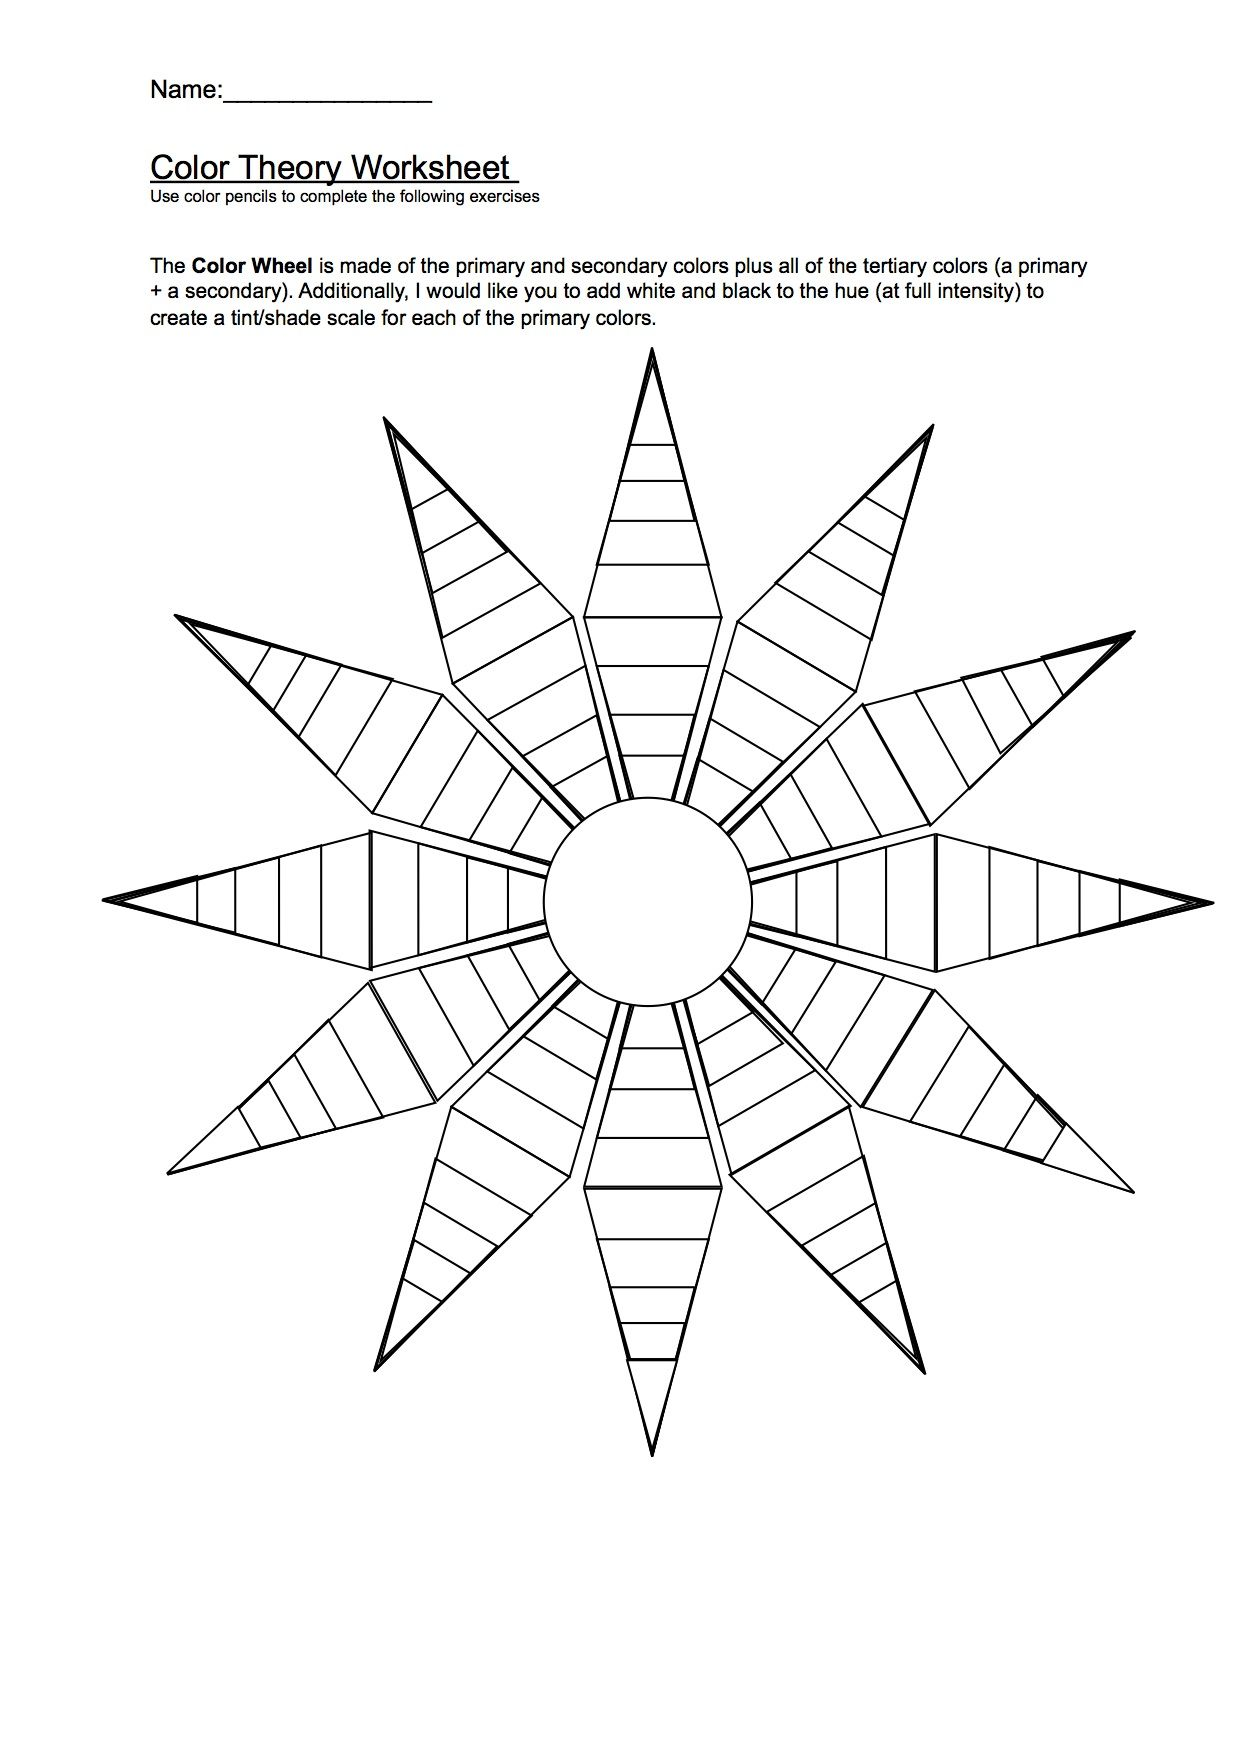 Color Wheel Worksheet Elements Of Art